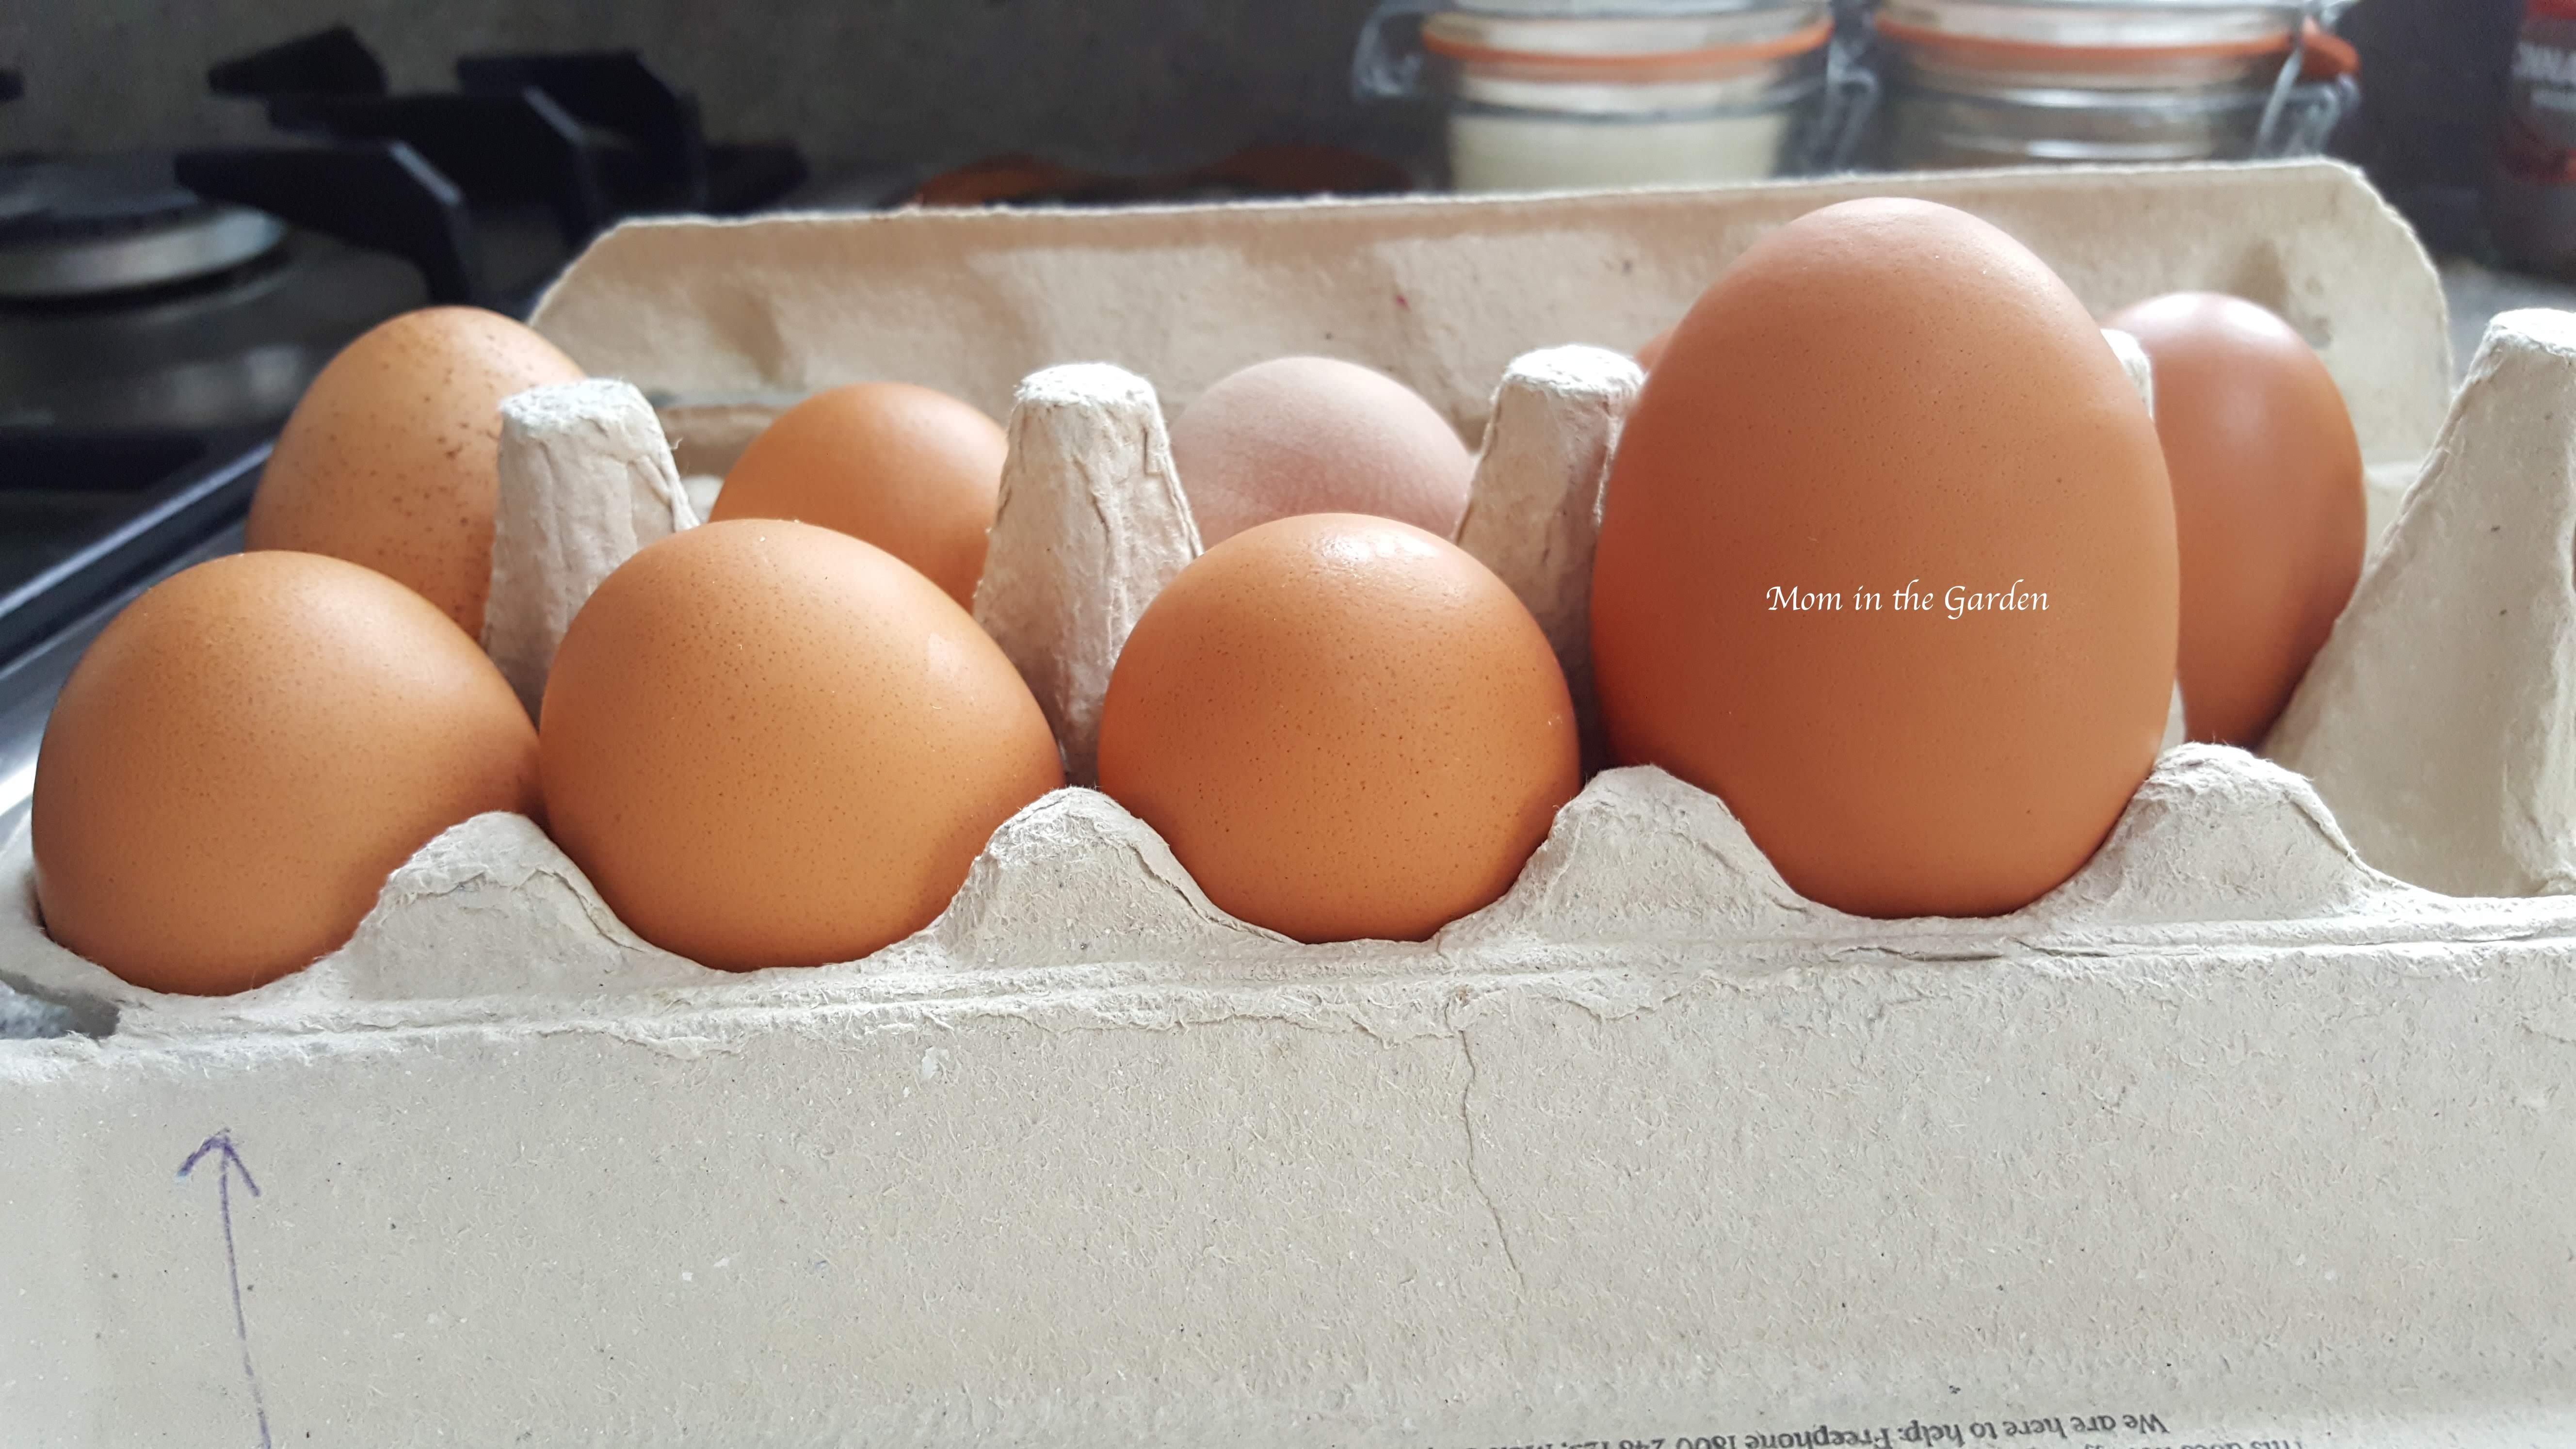 egg carton of fresh eggs